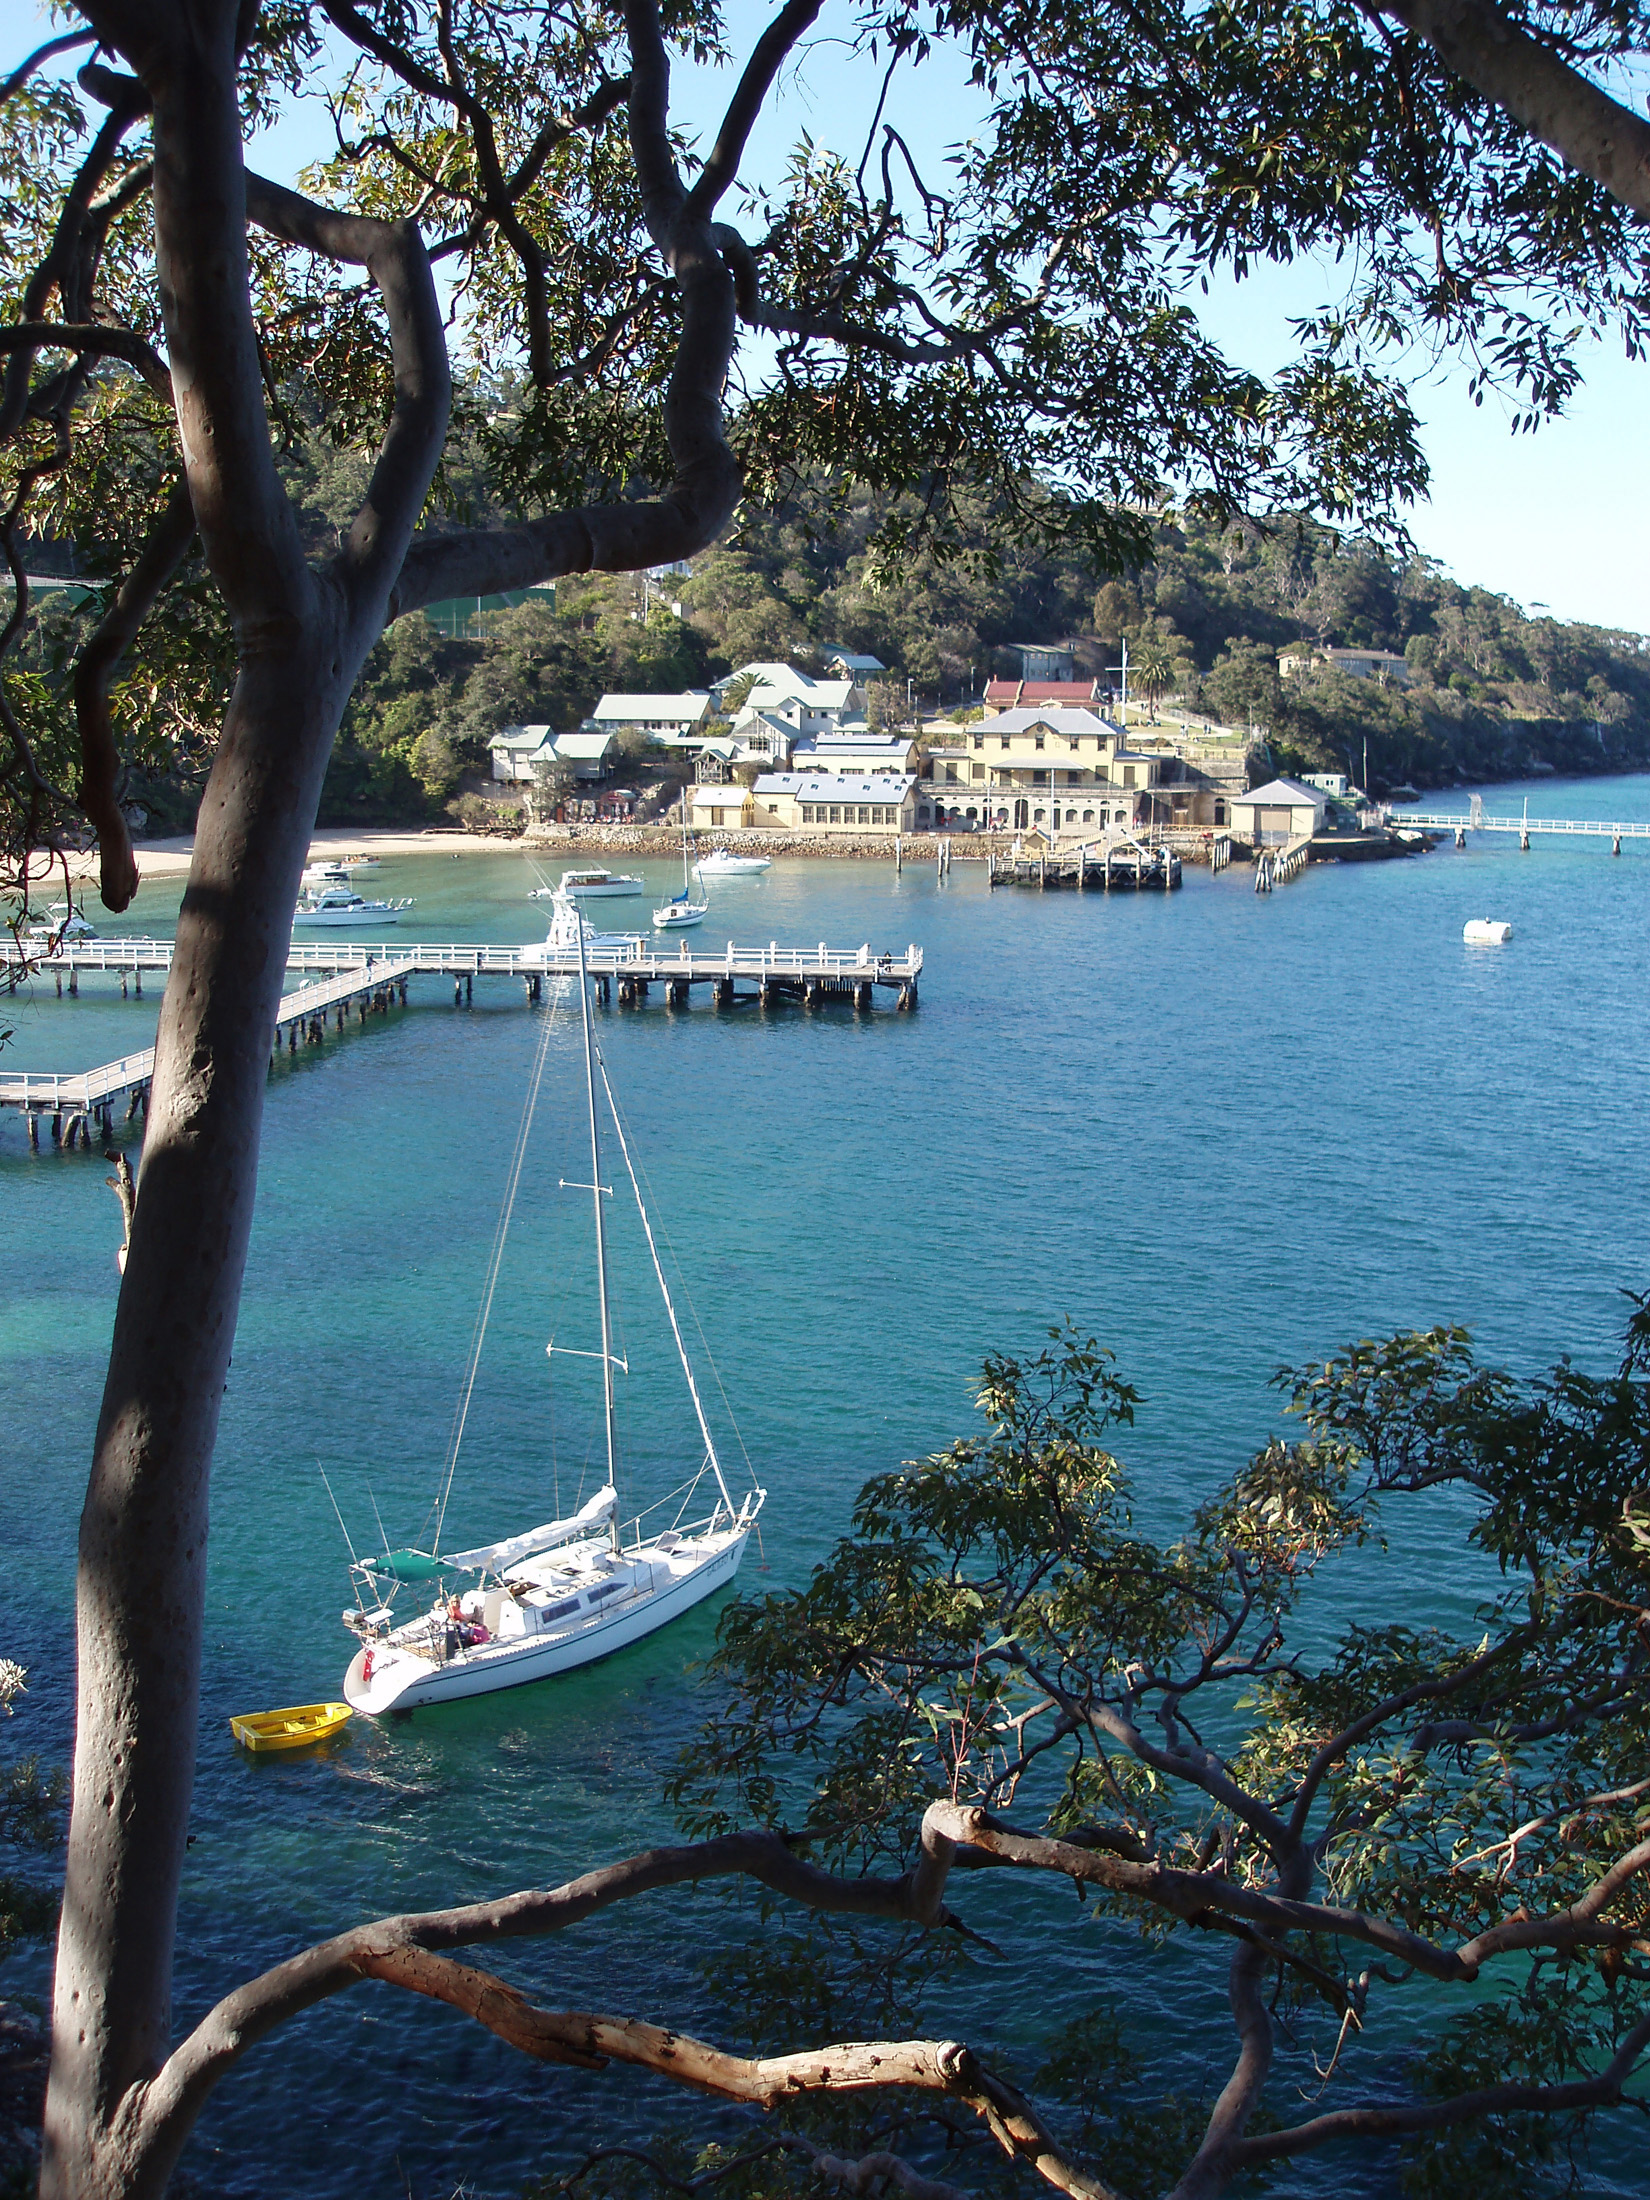 Overview of Sailboat Anchored at Chowder Head, Sydney, Australia